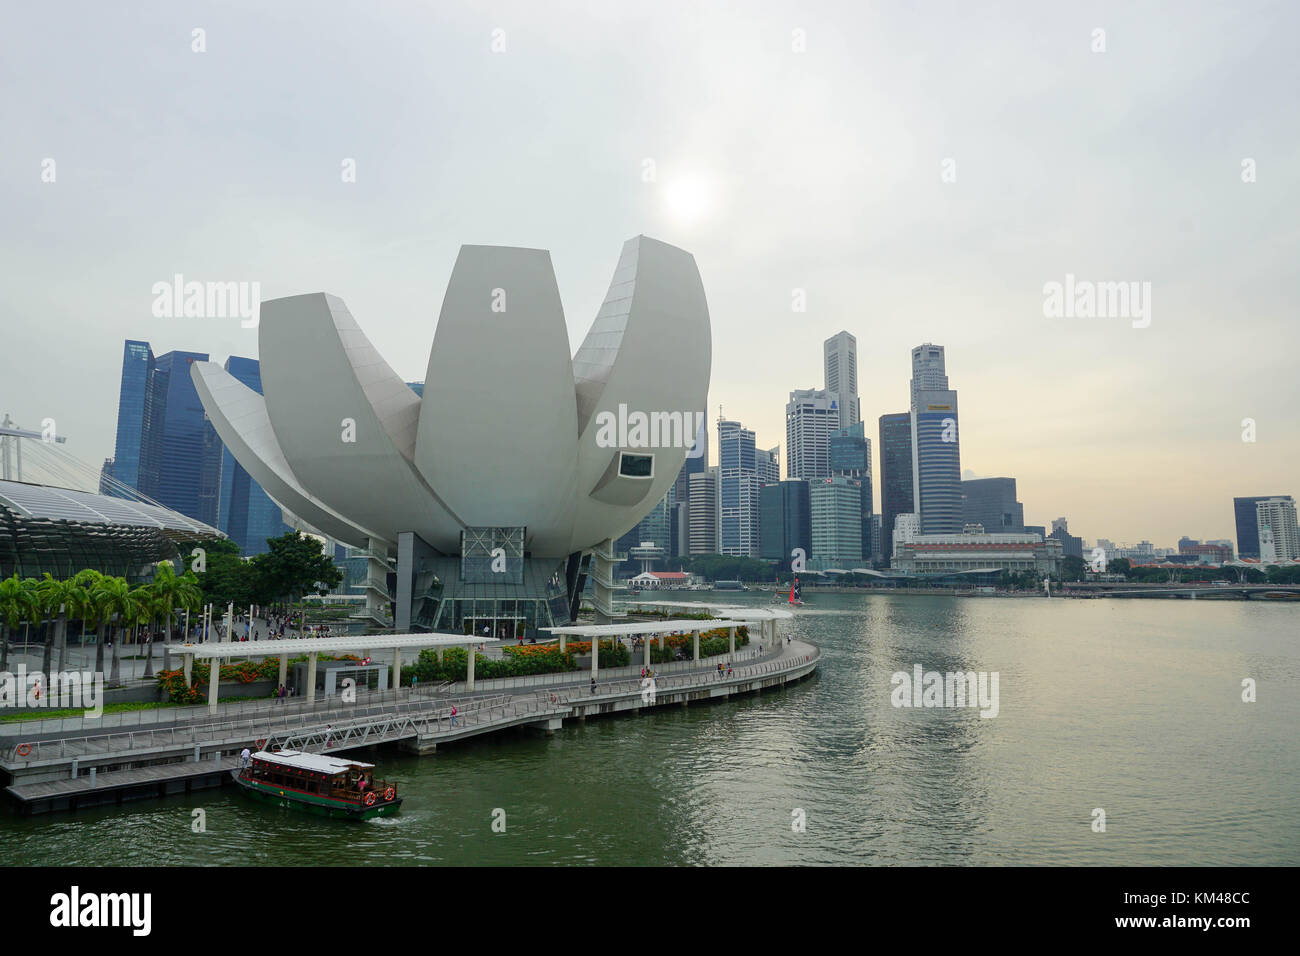 ArtScience Museum locate at Marina Bay Sands‎, Downtown Core of Central Area Singapore. - Stock Image